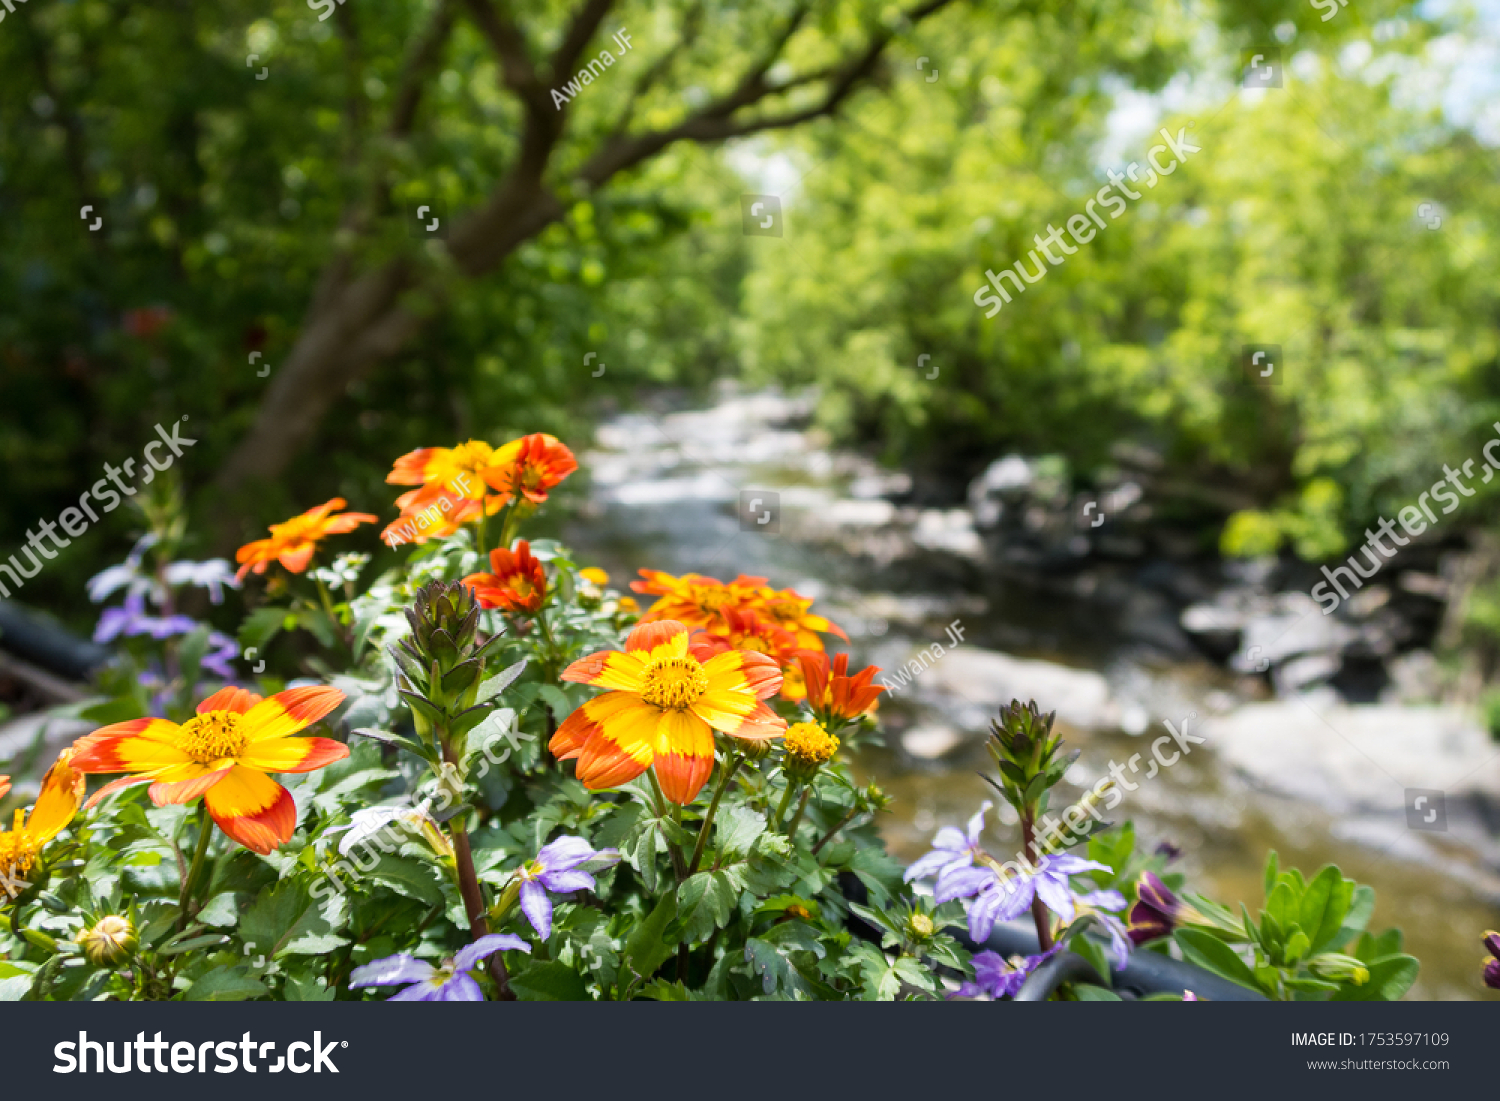 stock-photo-flowers-and-river-in-freligh